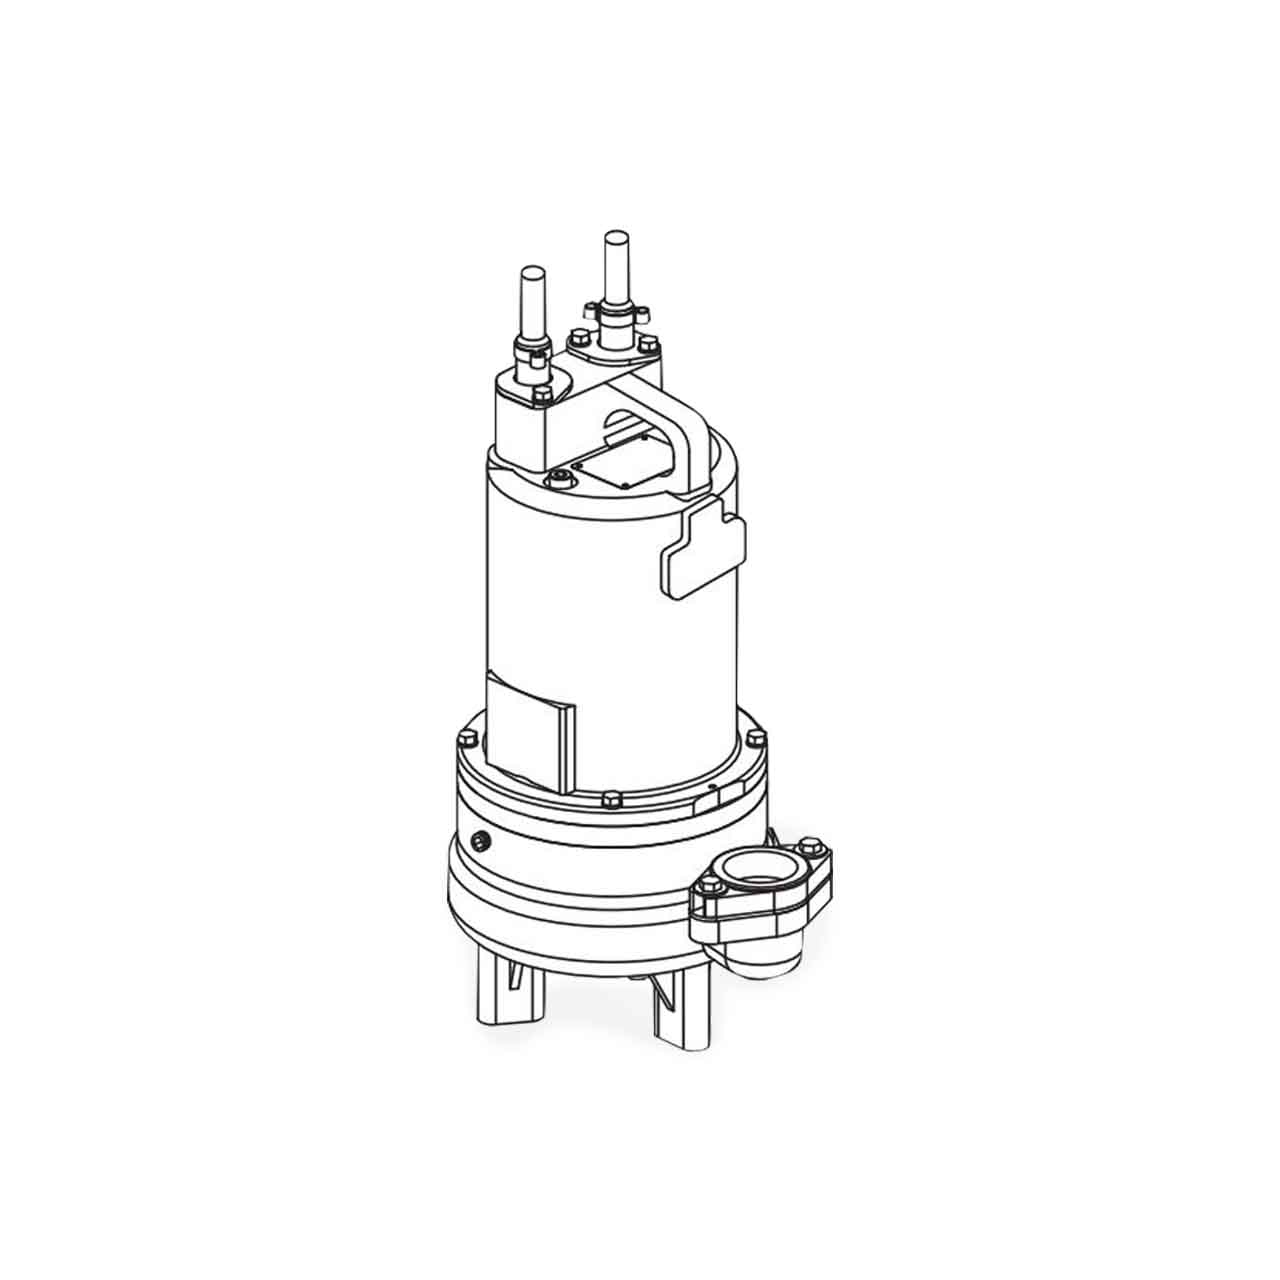 hight resolution of barnes barnes 2sev2052ds submersible double seal sewage ejector pump 2 0 hp 575v 3ph 20 cord manual brn107921